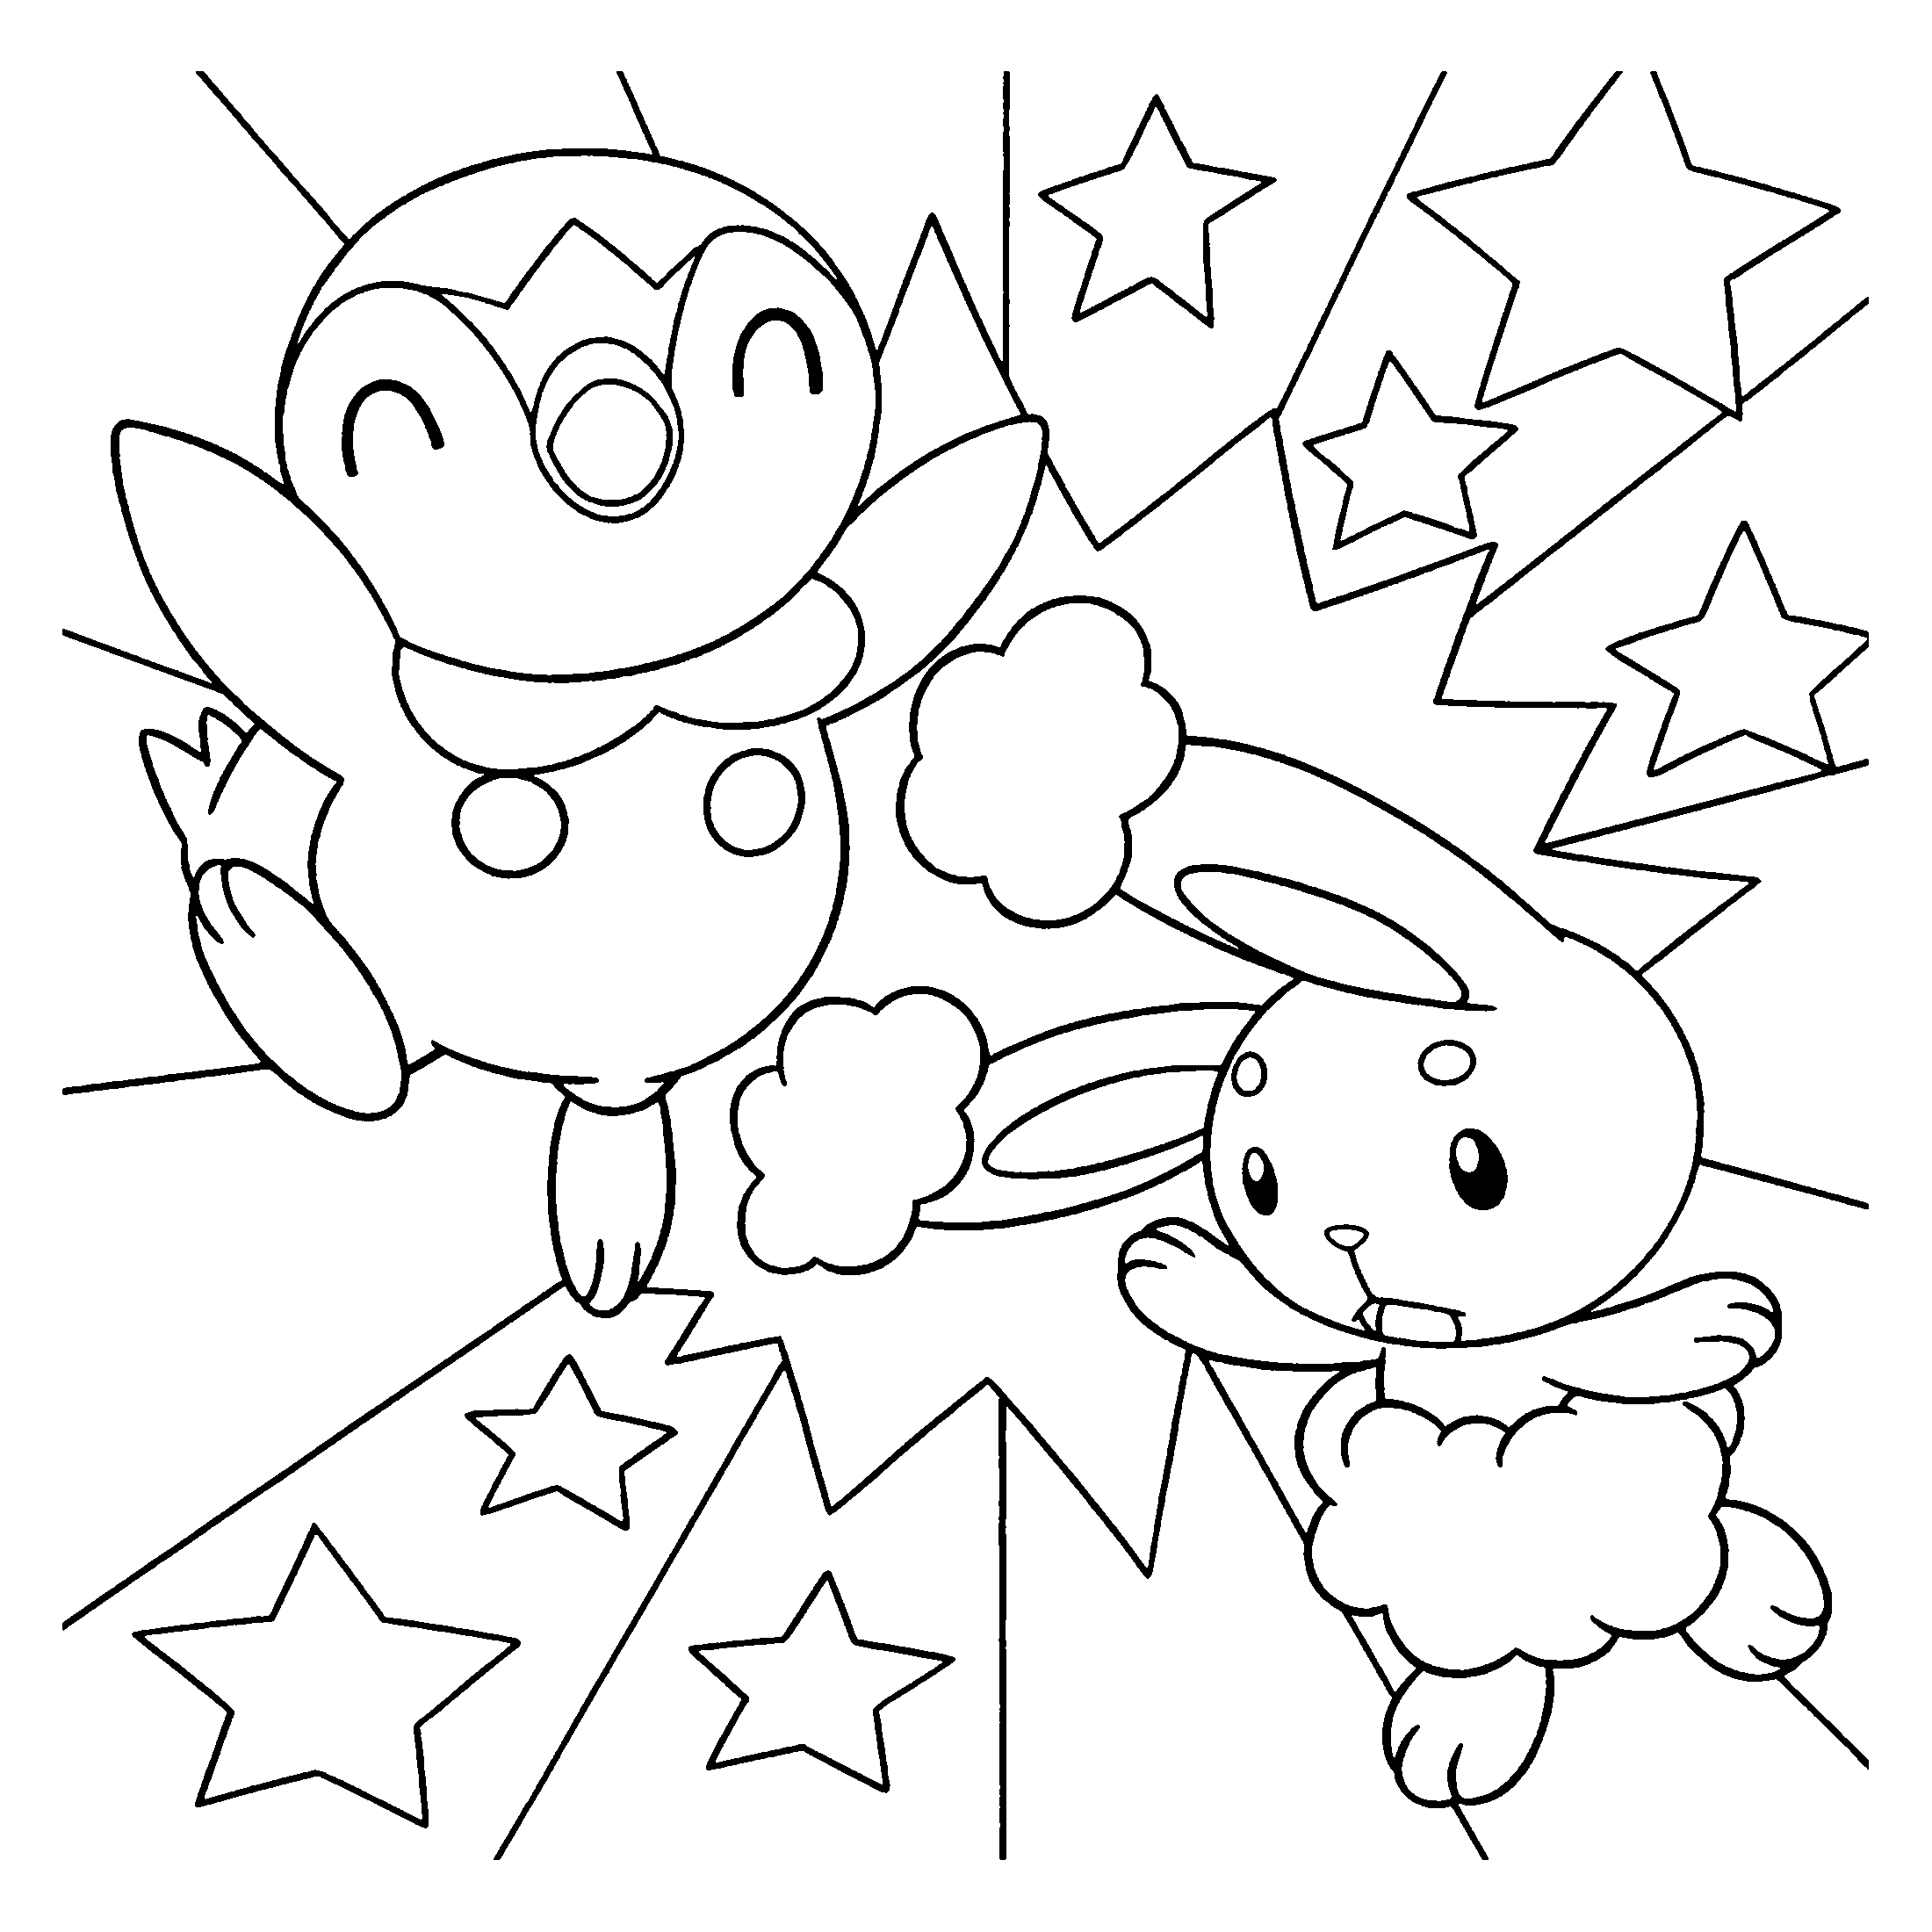 Coloring Page Pokemon Diamond Pearl Coloring Pages 93 Pokemon Coloring Pages Pokemon Coloring Coloring Pages